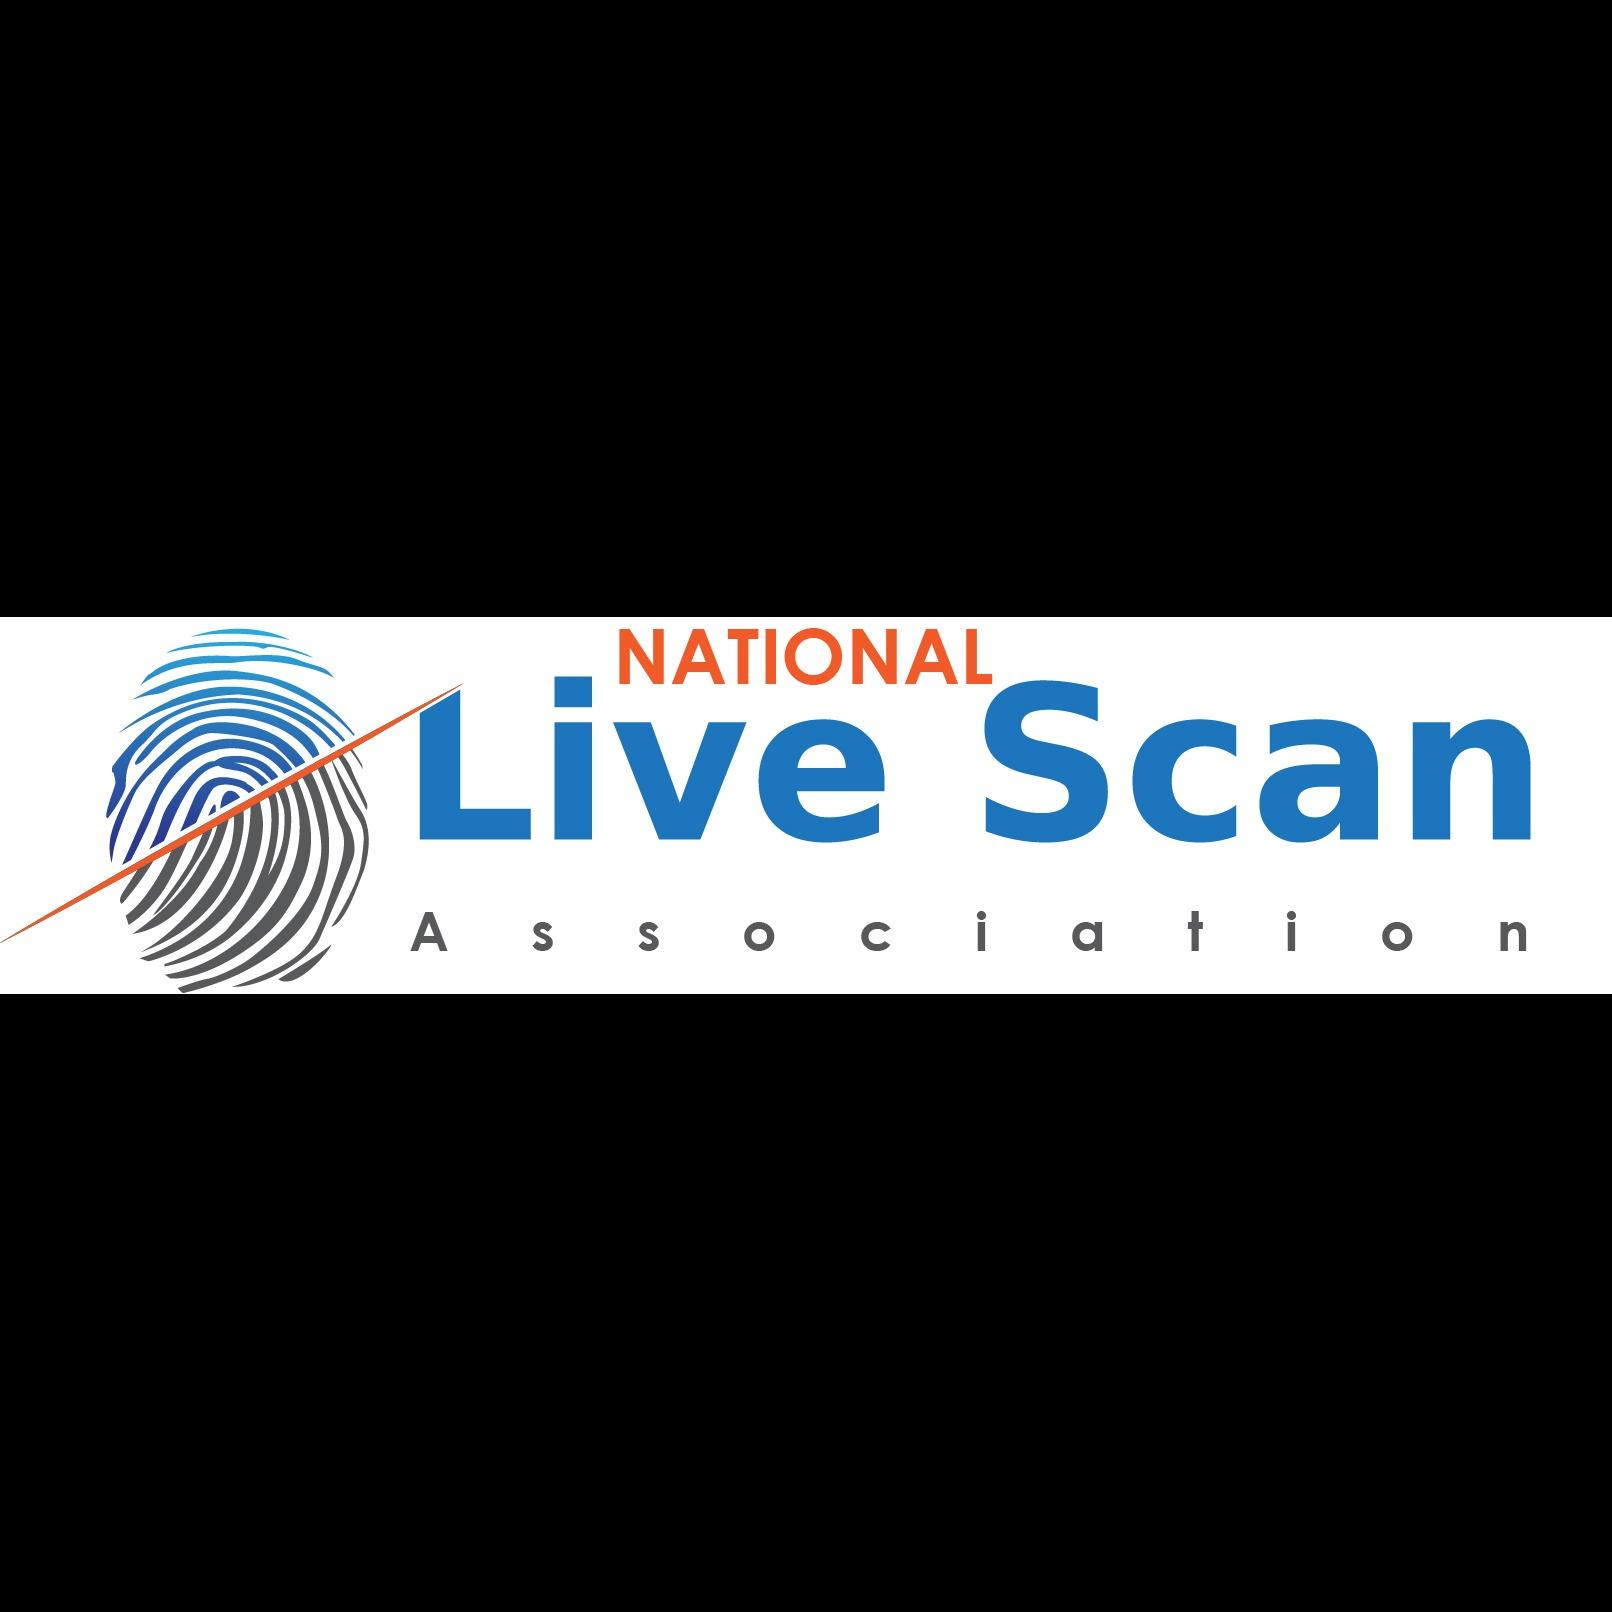 National Live Scan Association